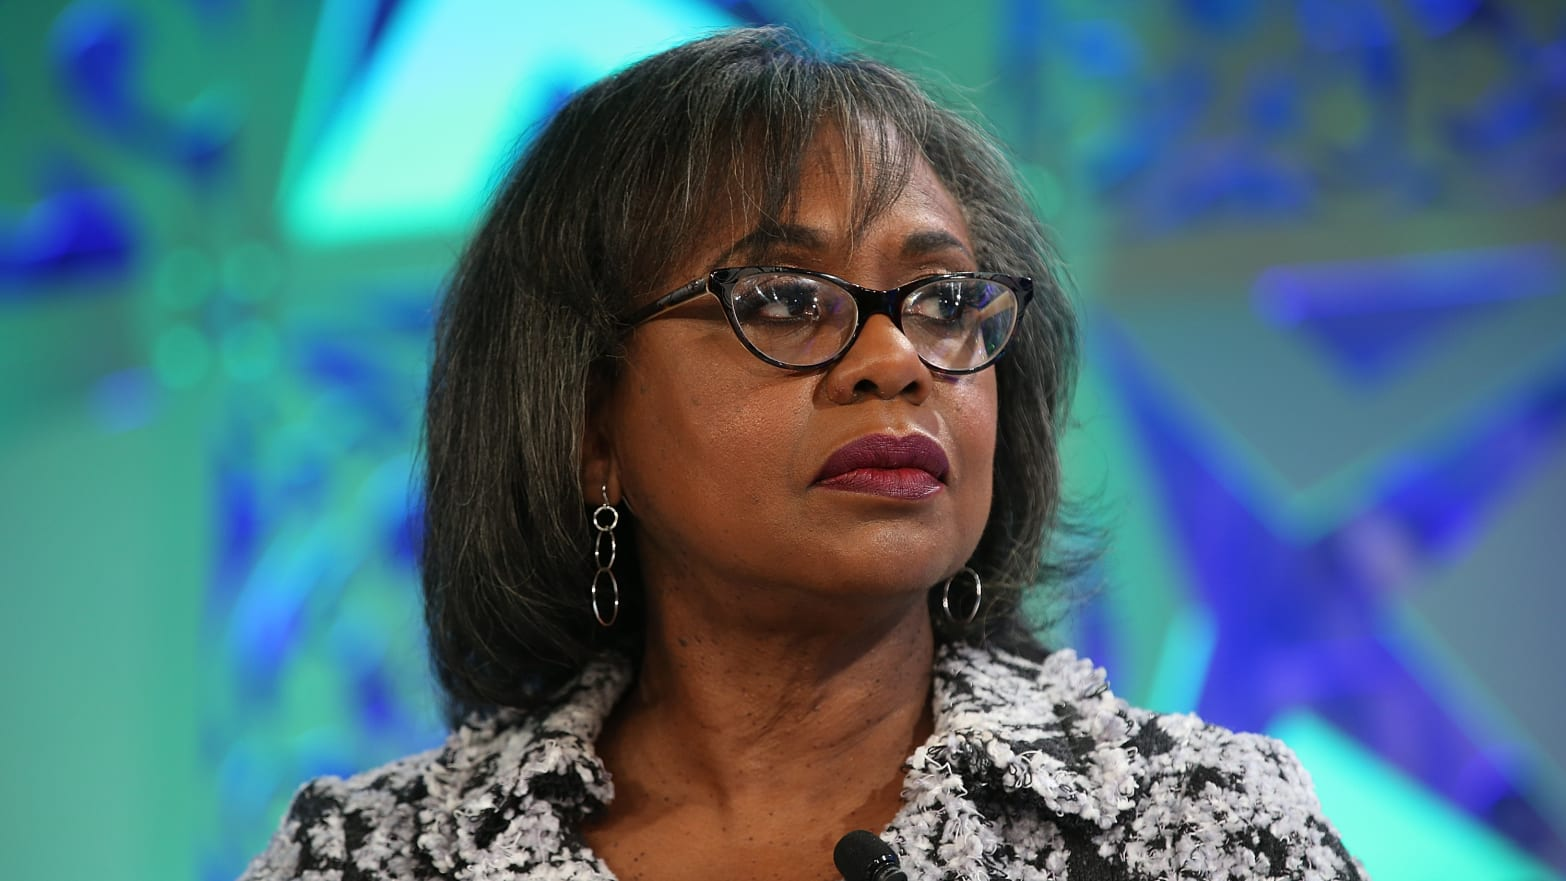 Anita Hill Bashes Biden, Demands He Apologize to 'Other Women'